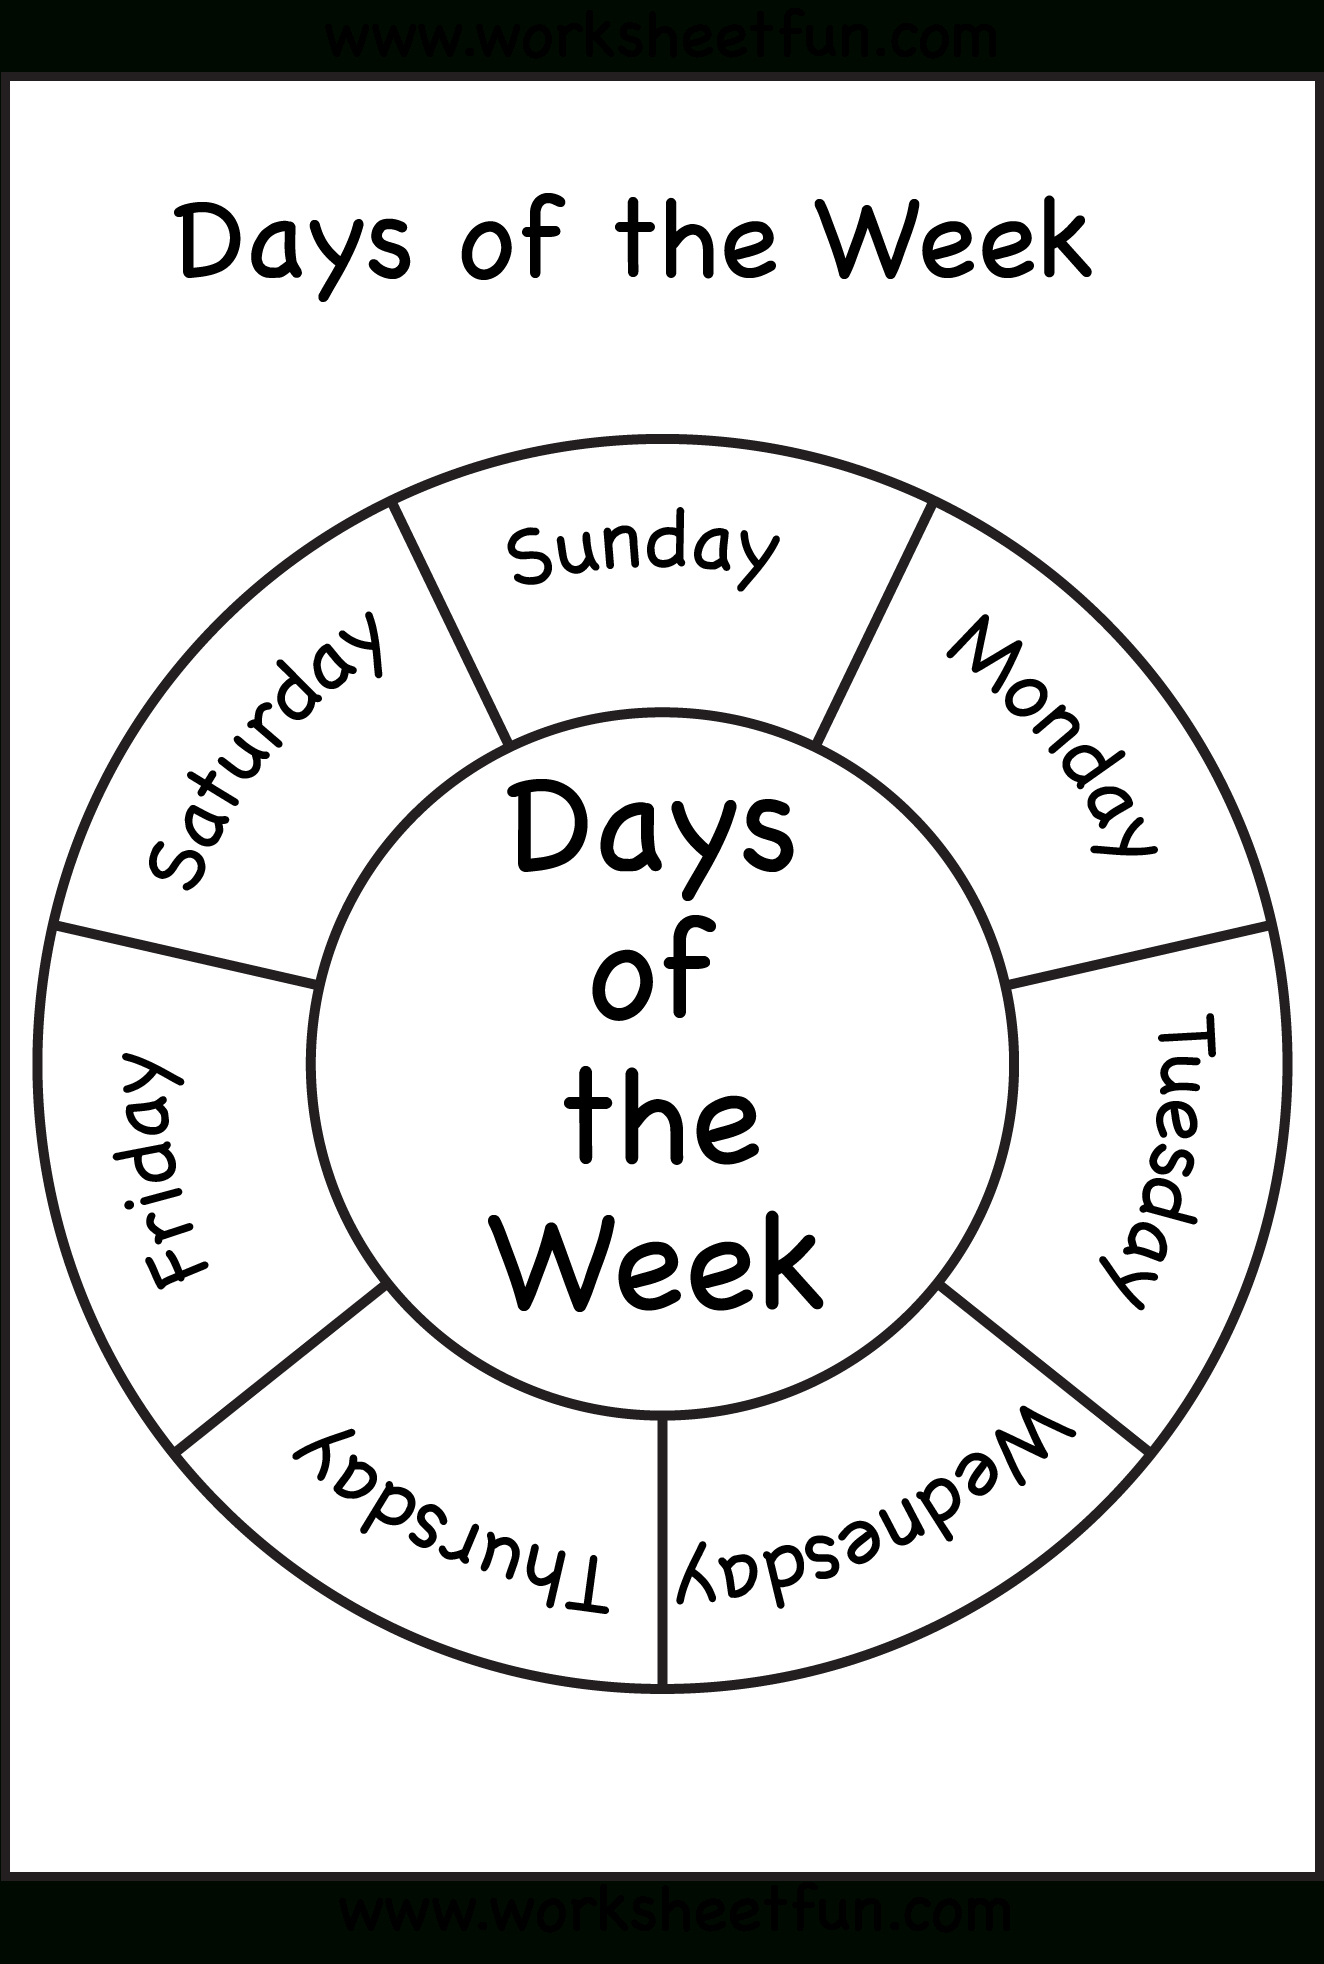 Days Of The Week | Days Of The Week! | Preschool, Preschool | Days Of The Week Printable Worksheets